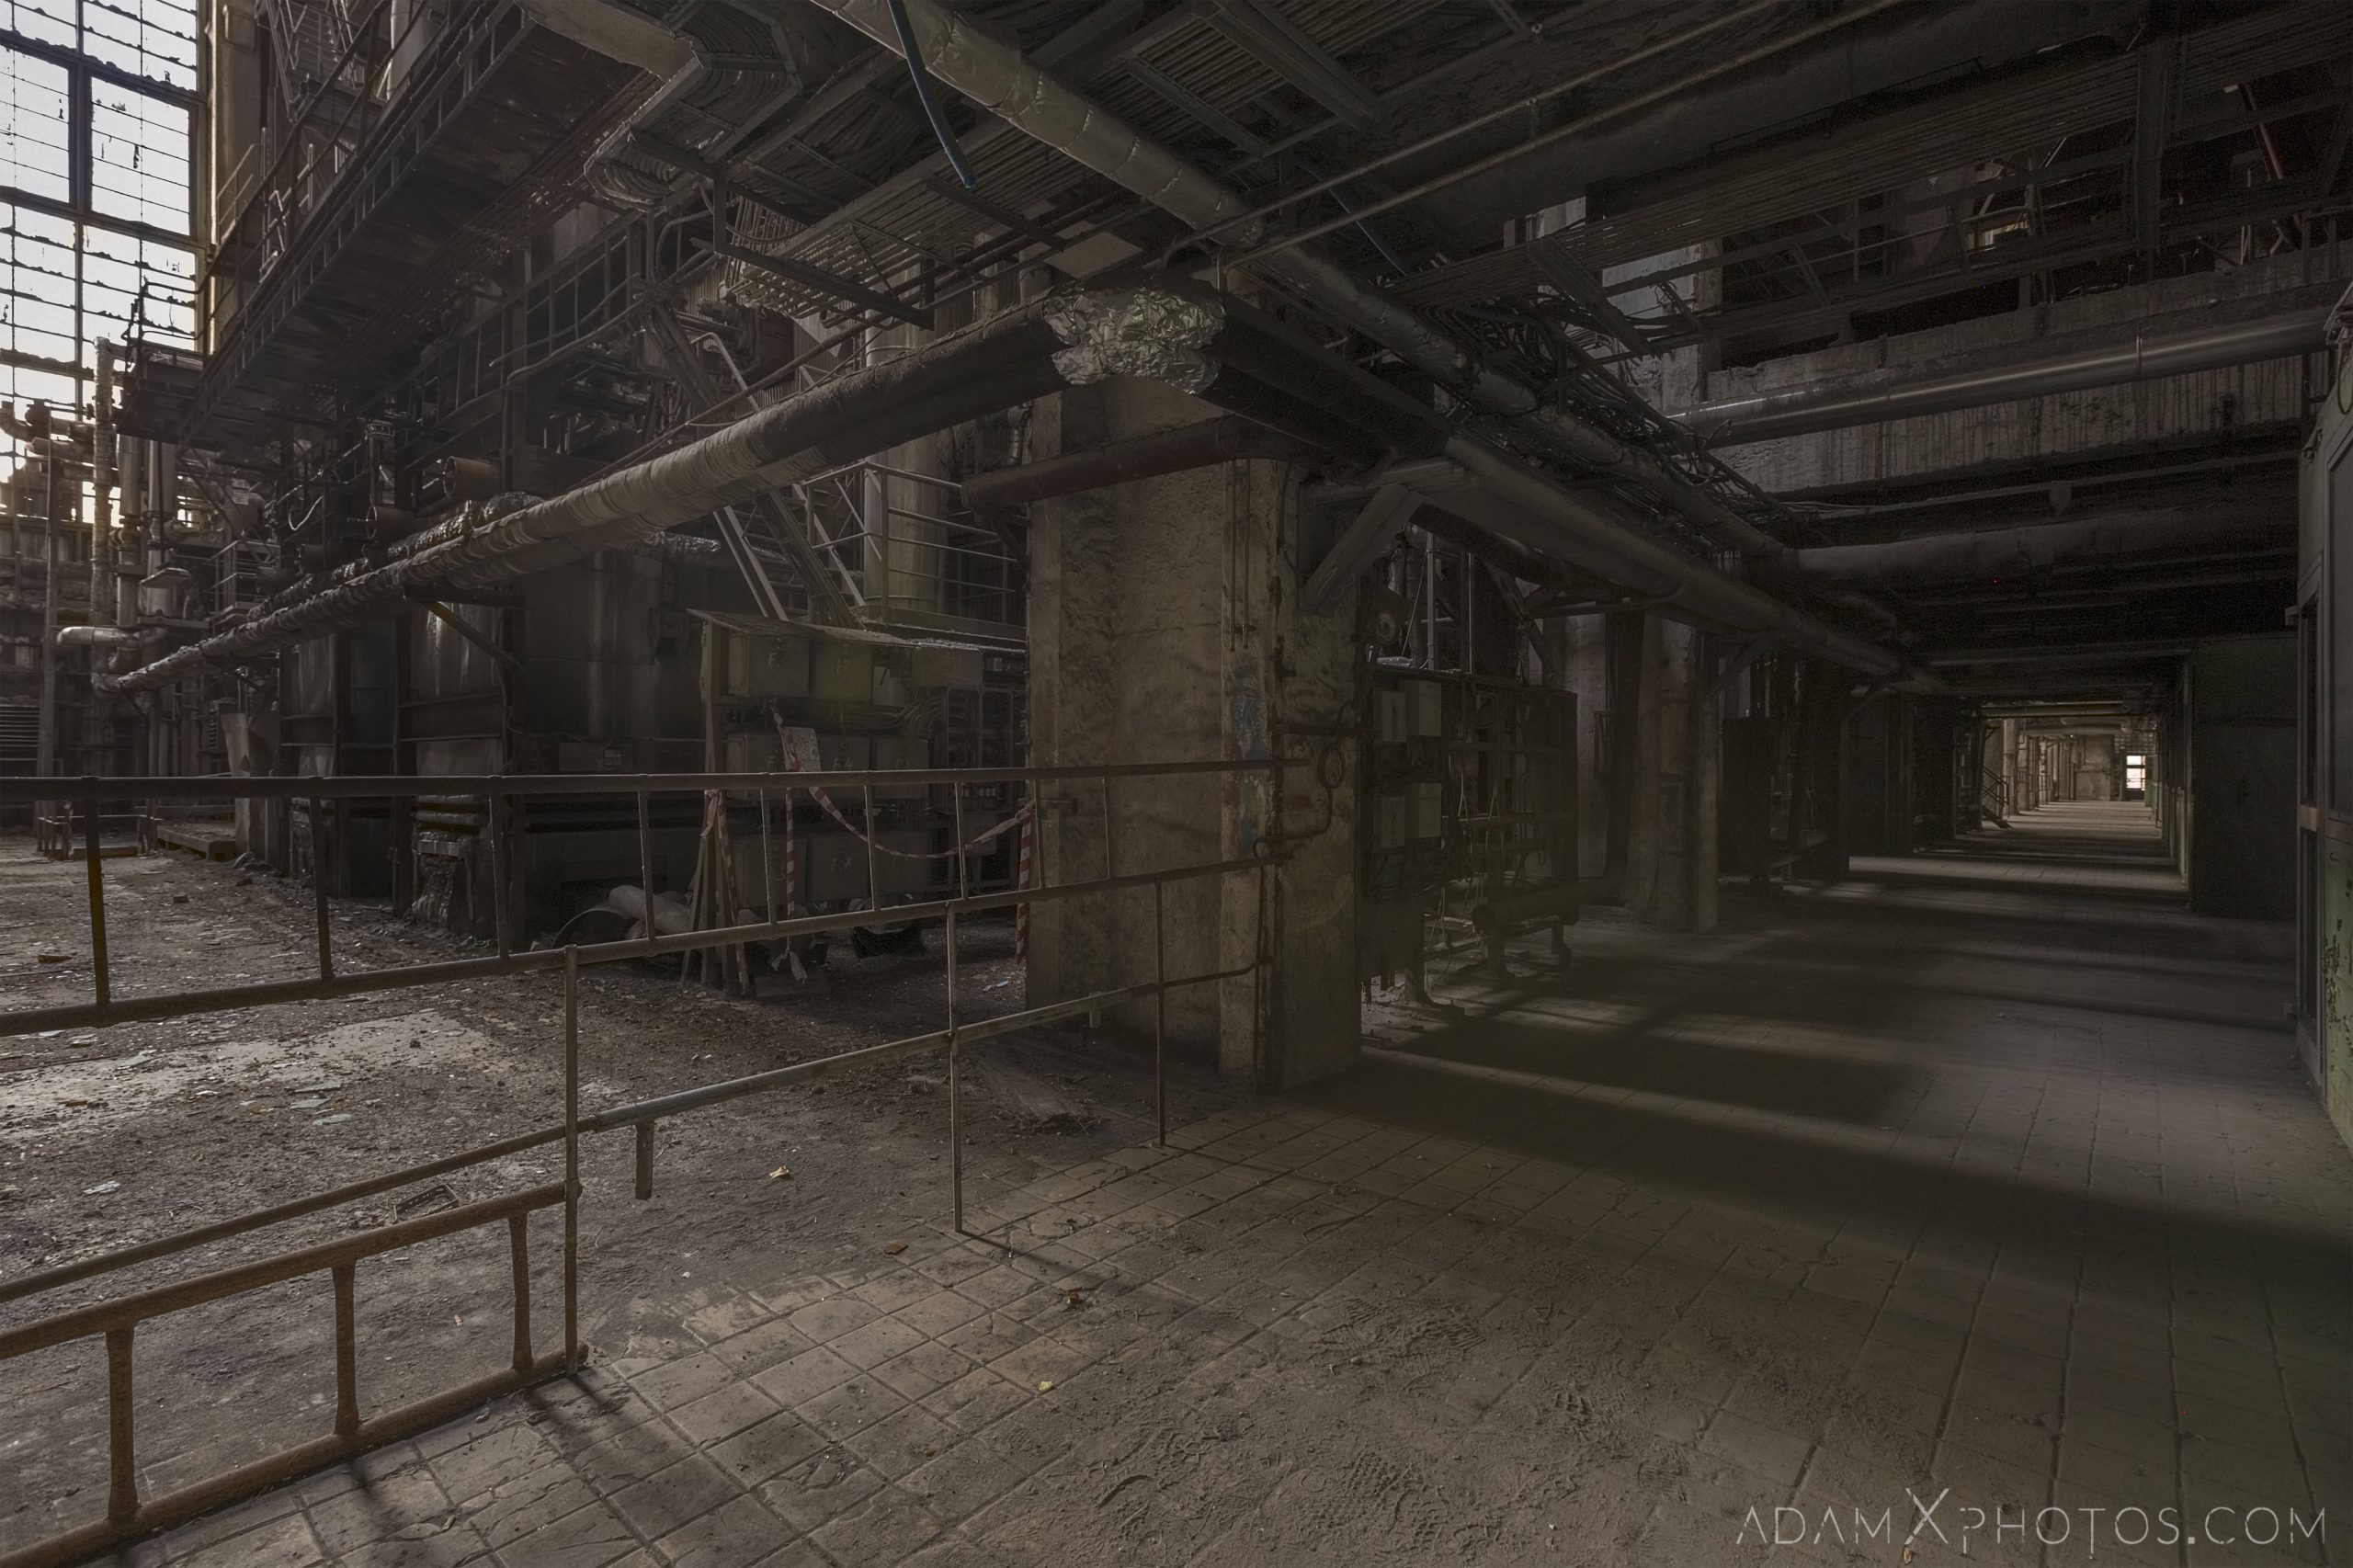 pipes industry industrial rusty rusting Bladerunner Blade Runner 2049 Powerplant Inota Shephard's Power Plant Hungary Adam X Urbex Urban Exploration Access 2018 Abandoned decay ruins lost forgotten derelict location creepy haunting eerie security